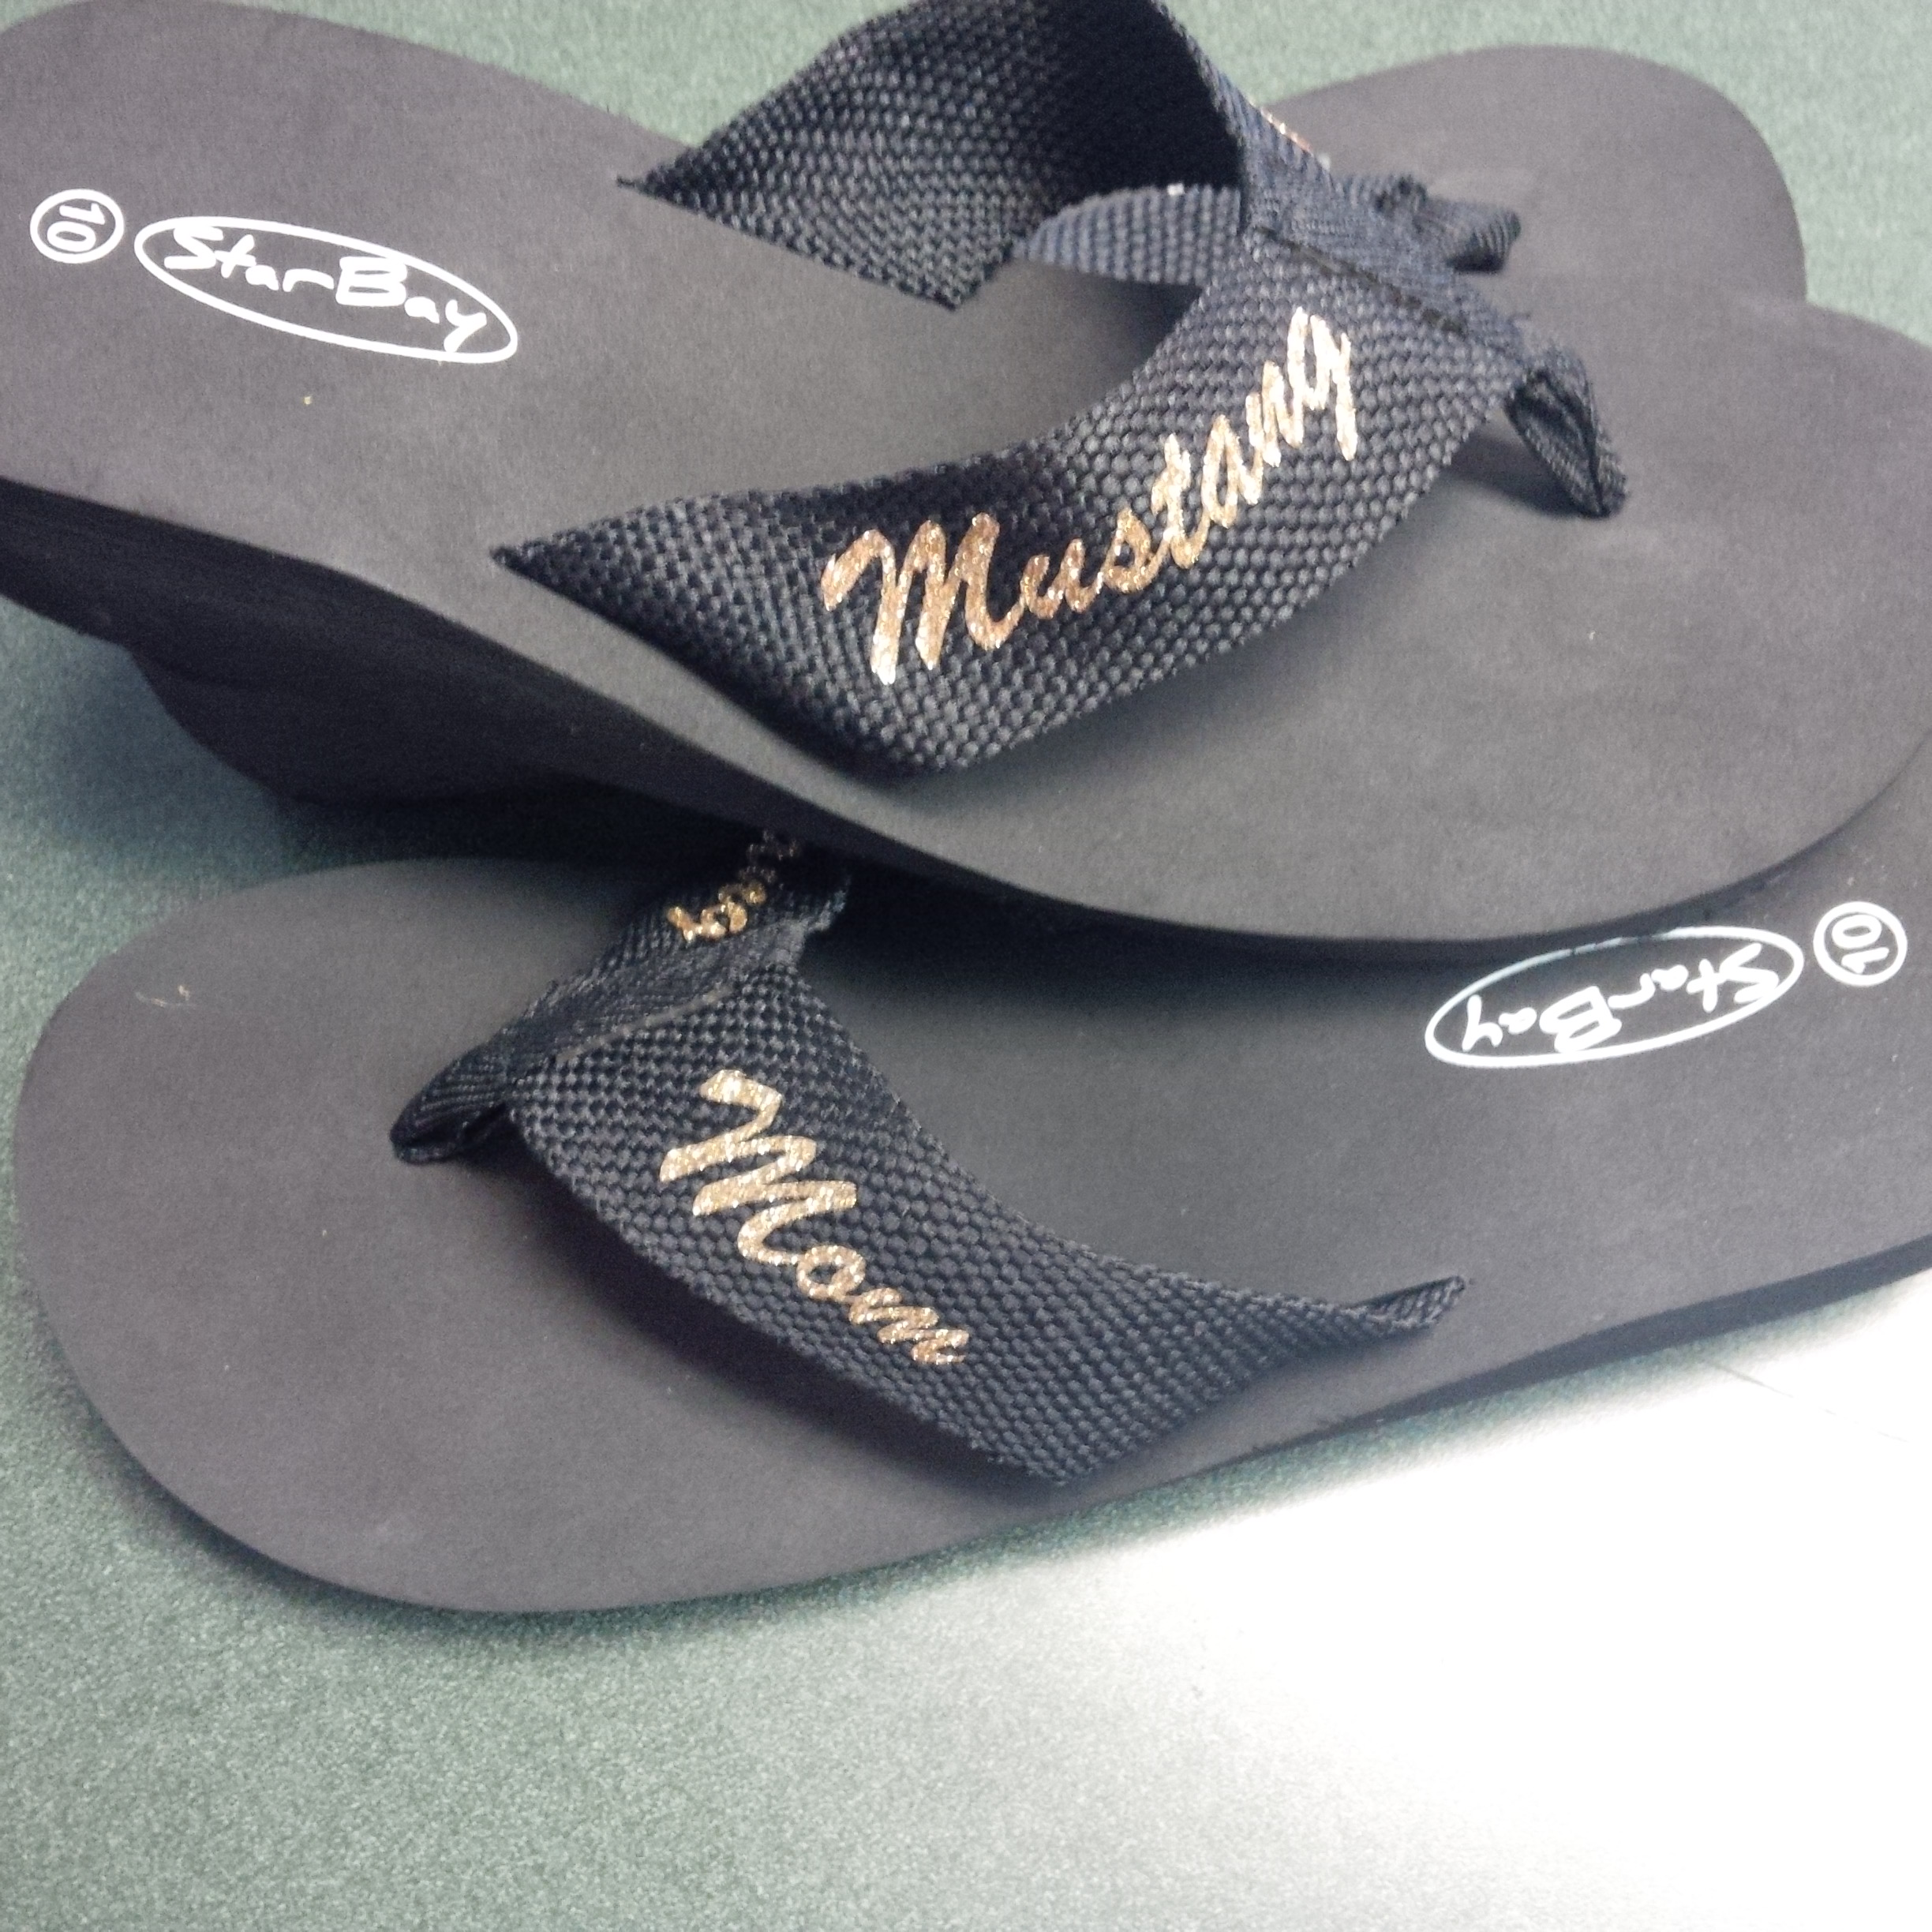 a08bae048 MHS Glitter Flip Flops · One Stop T-Shirts and More · Online Store ...